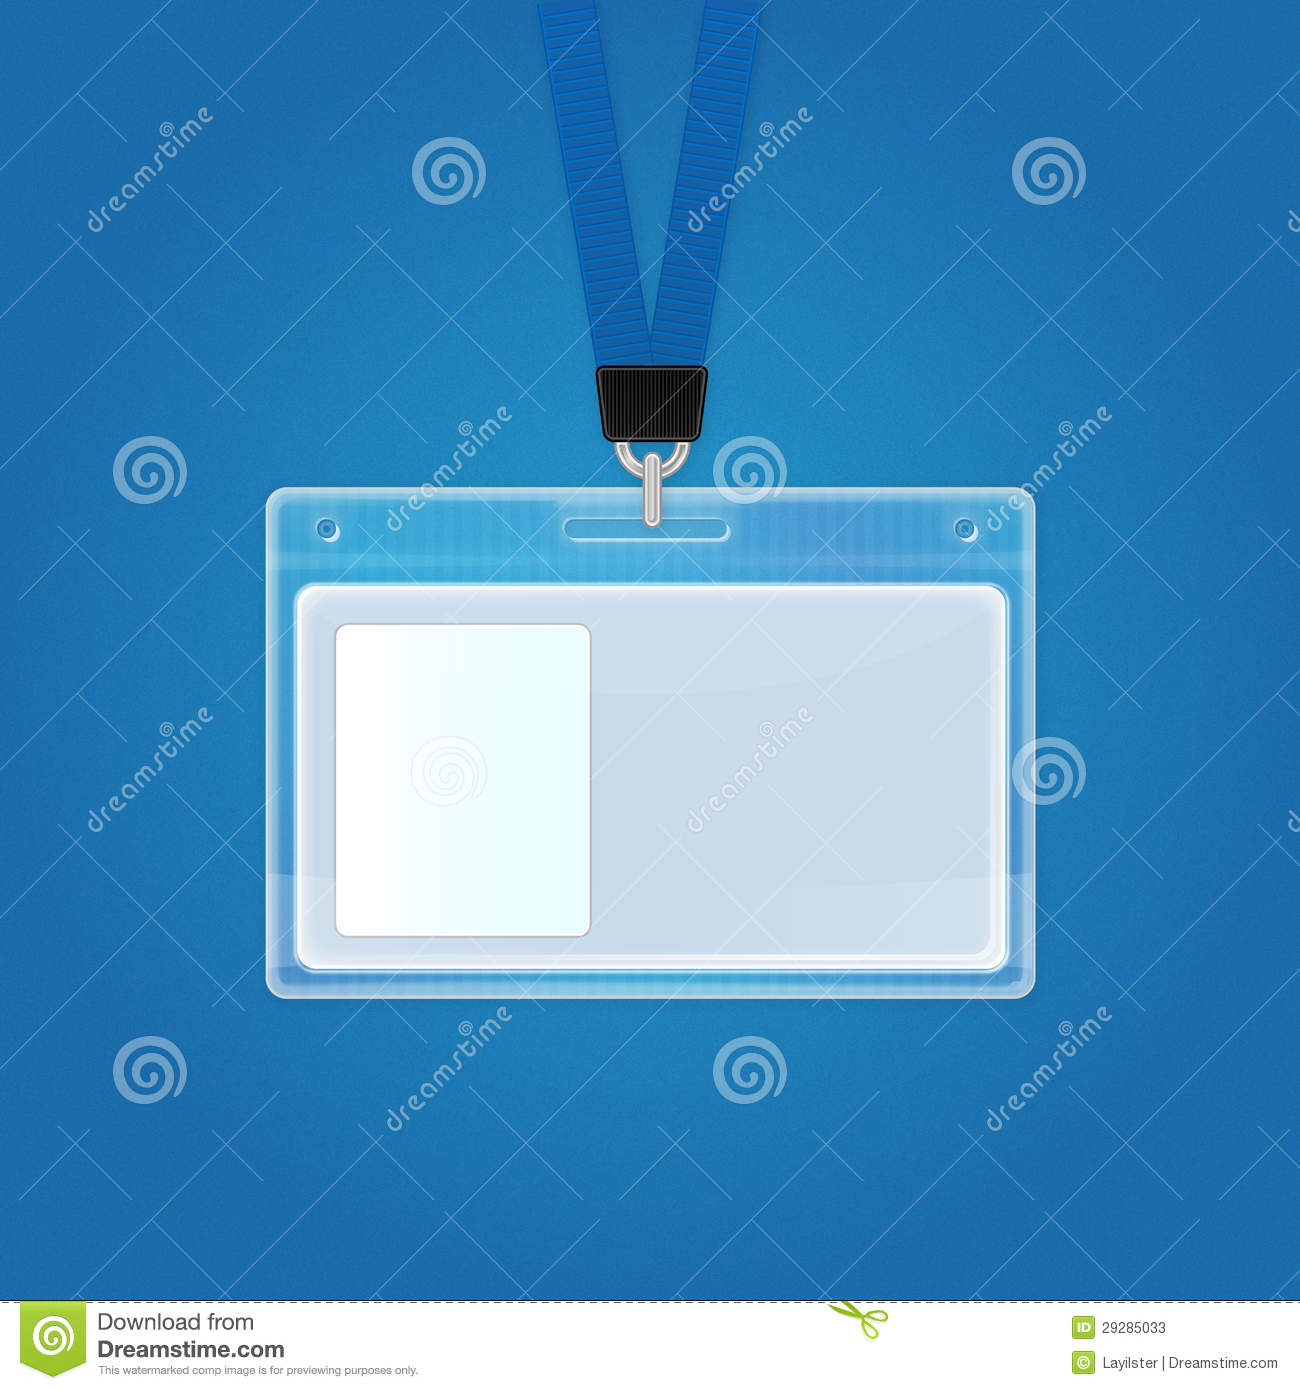 Plastic Id Badge Identification Card Icon on Authentication And Authorization